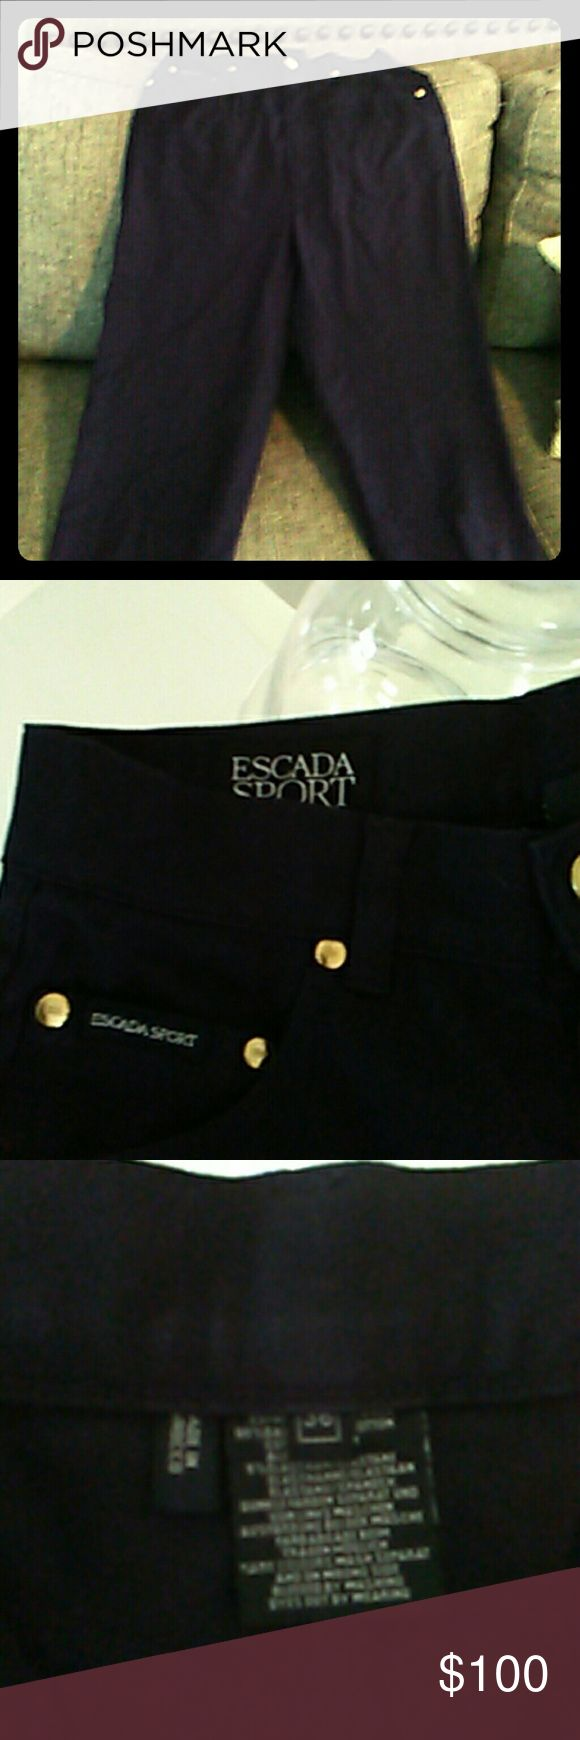 ESCADA Sport Jeans These navy blue ESCADA Sport jeans have only been worn twice. They are designed with five pockets and finished with a slightly tapered straight leg. Gold toned buttons embellish the front of these ultra comfy, yet stylish jeans. Stitching design grace the back pockets. Make them your new weekend favorite! ESCADA Sport Jeans Skinny